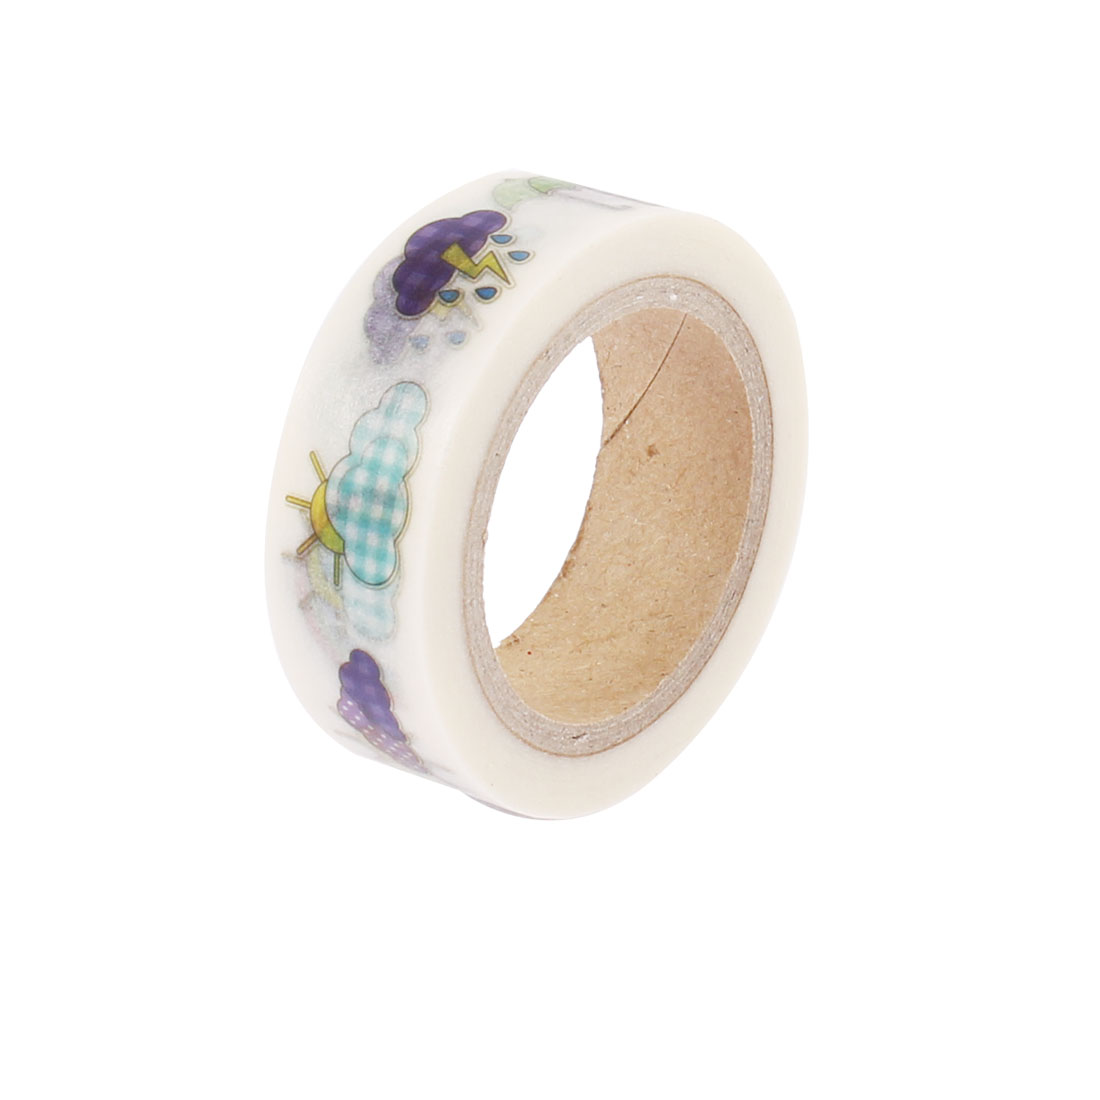 Sticky Self Adhesive Decorative Tape Paper Sellotape Craft